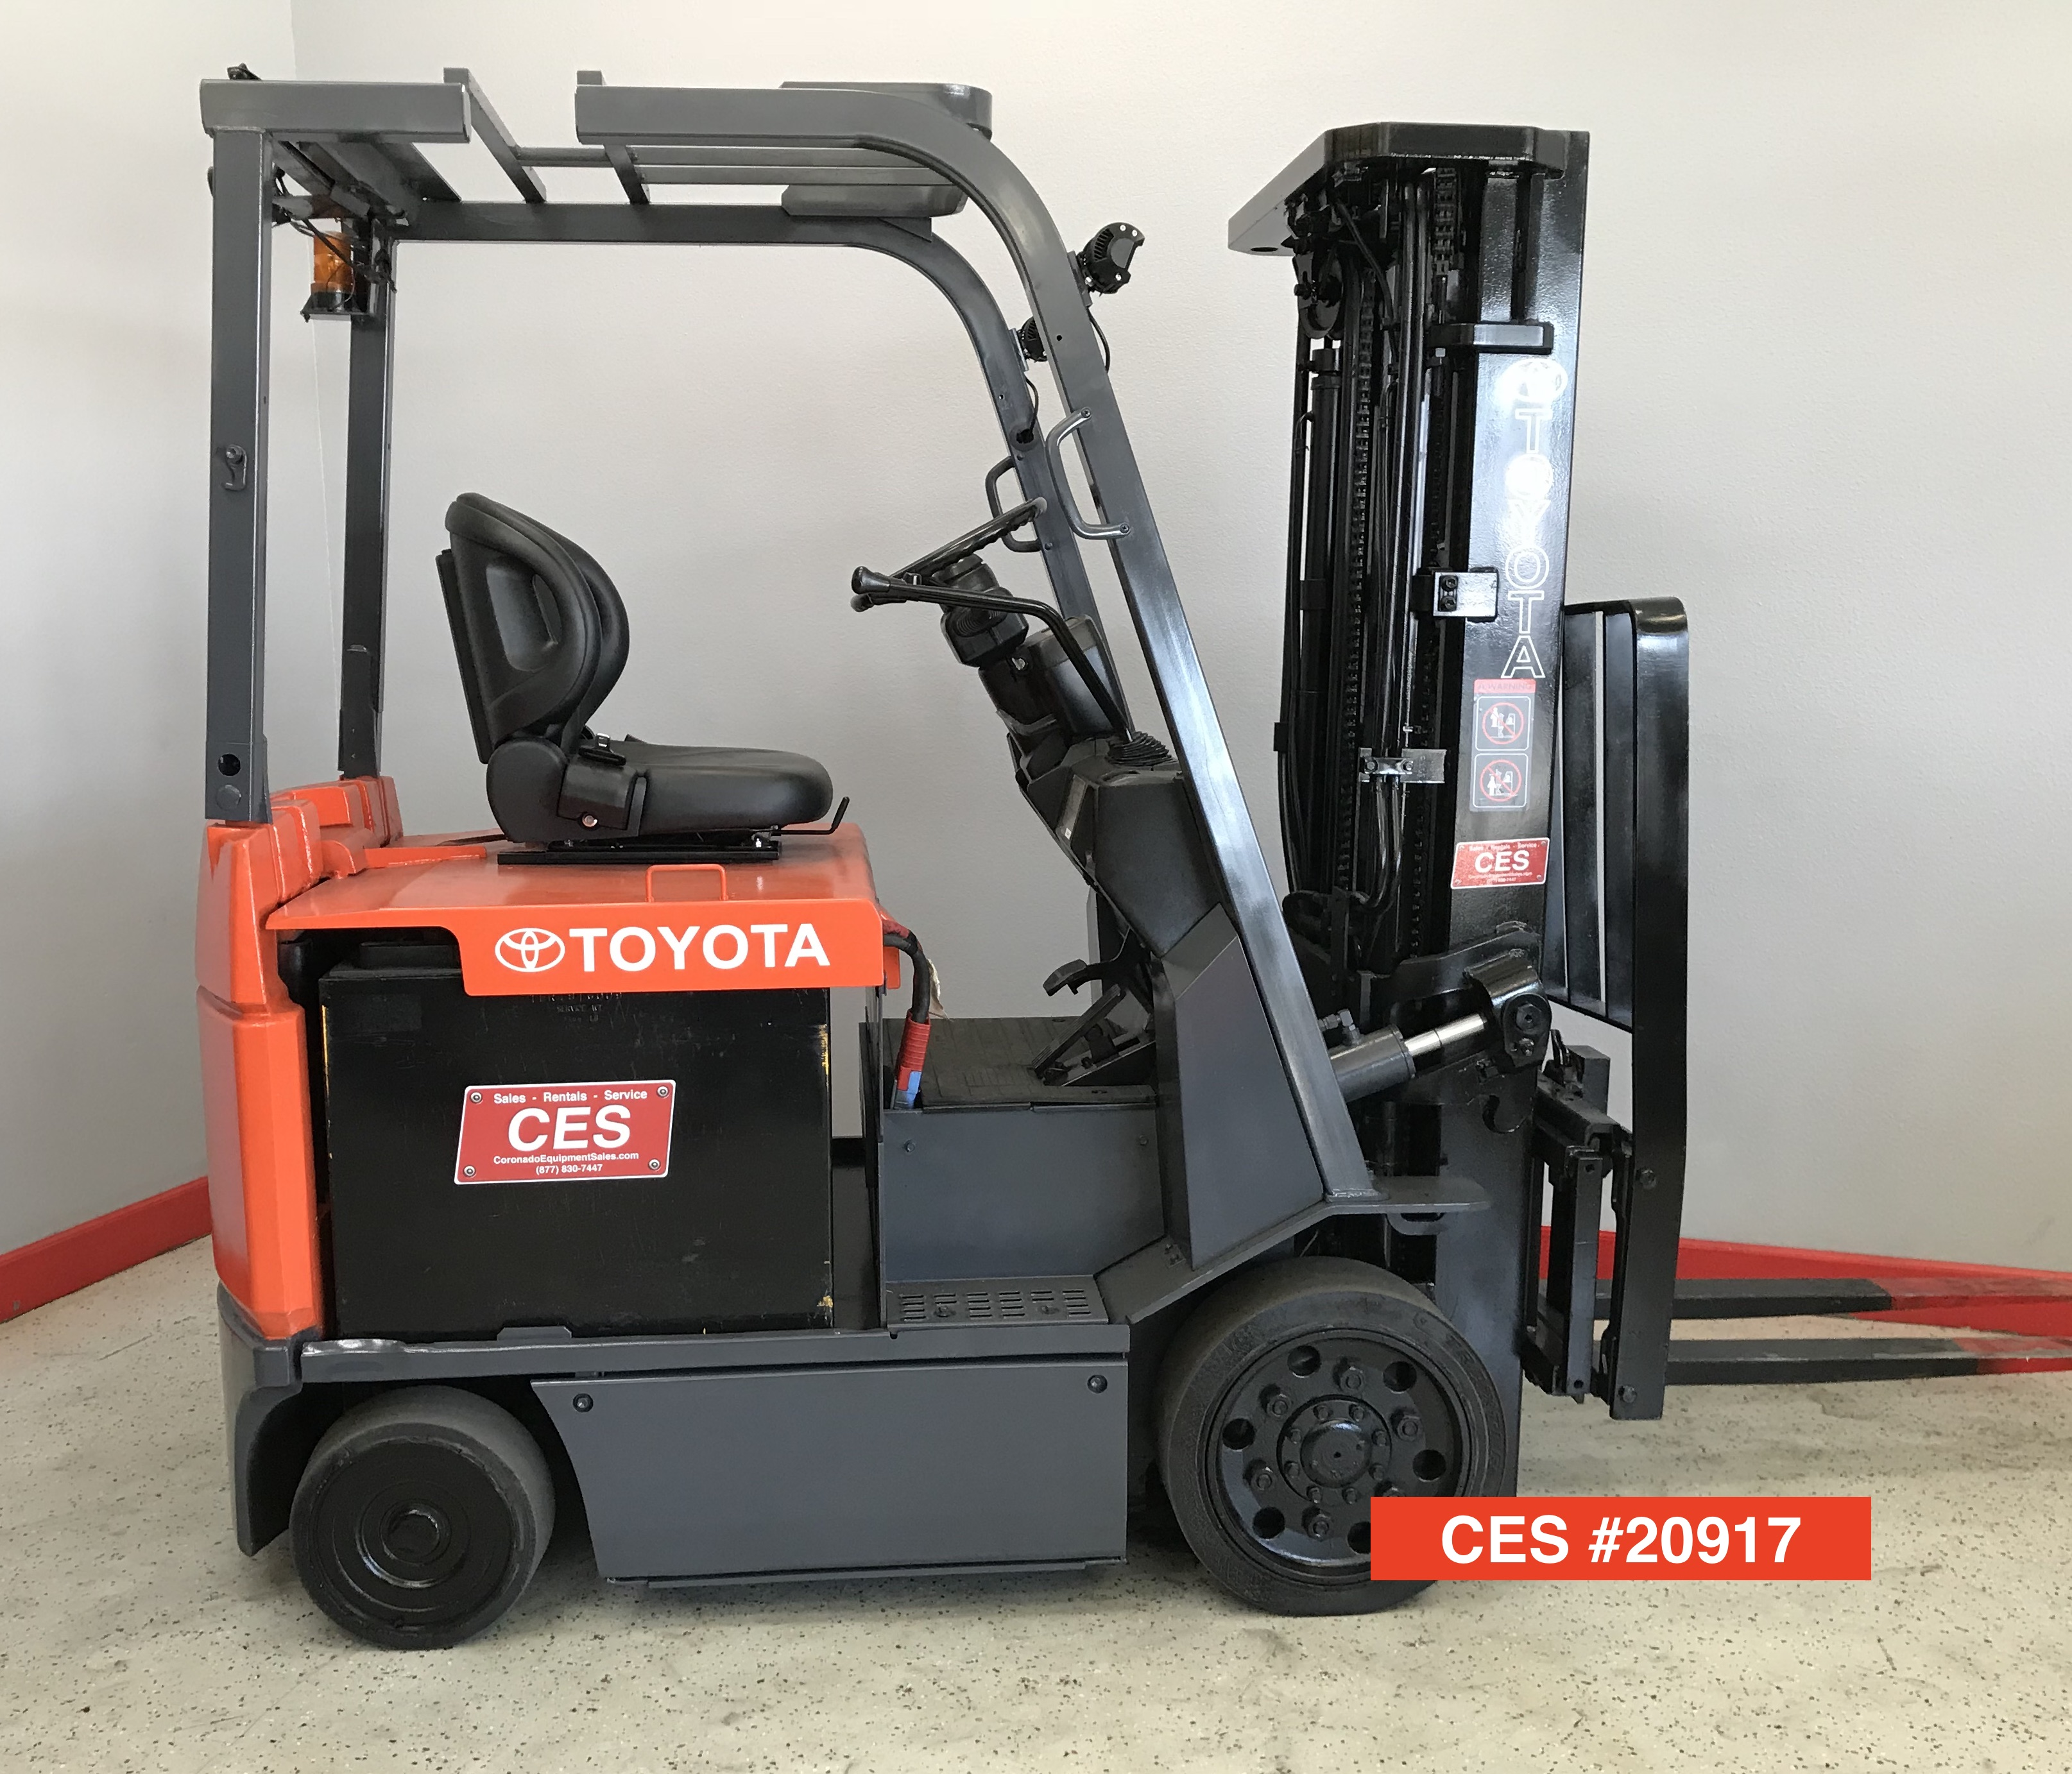 Toyota Forklift For Sale: CES #20917 Toyota 7FBCU20 Electric Forklift